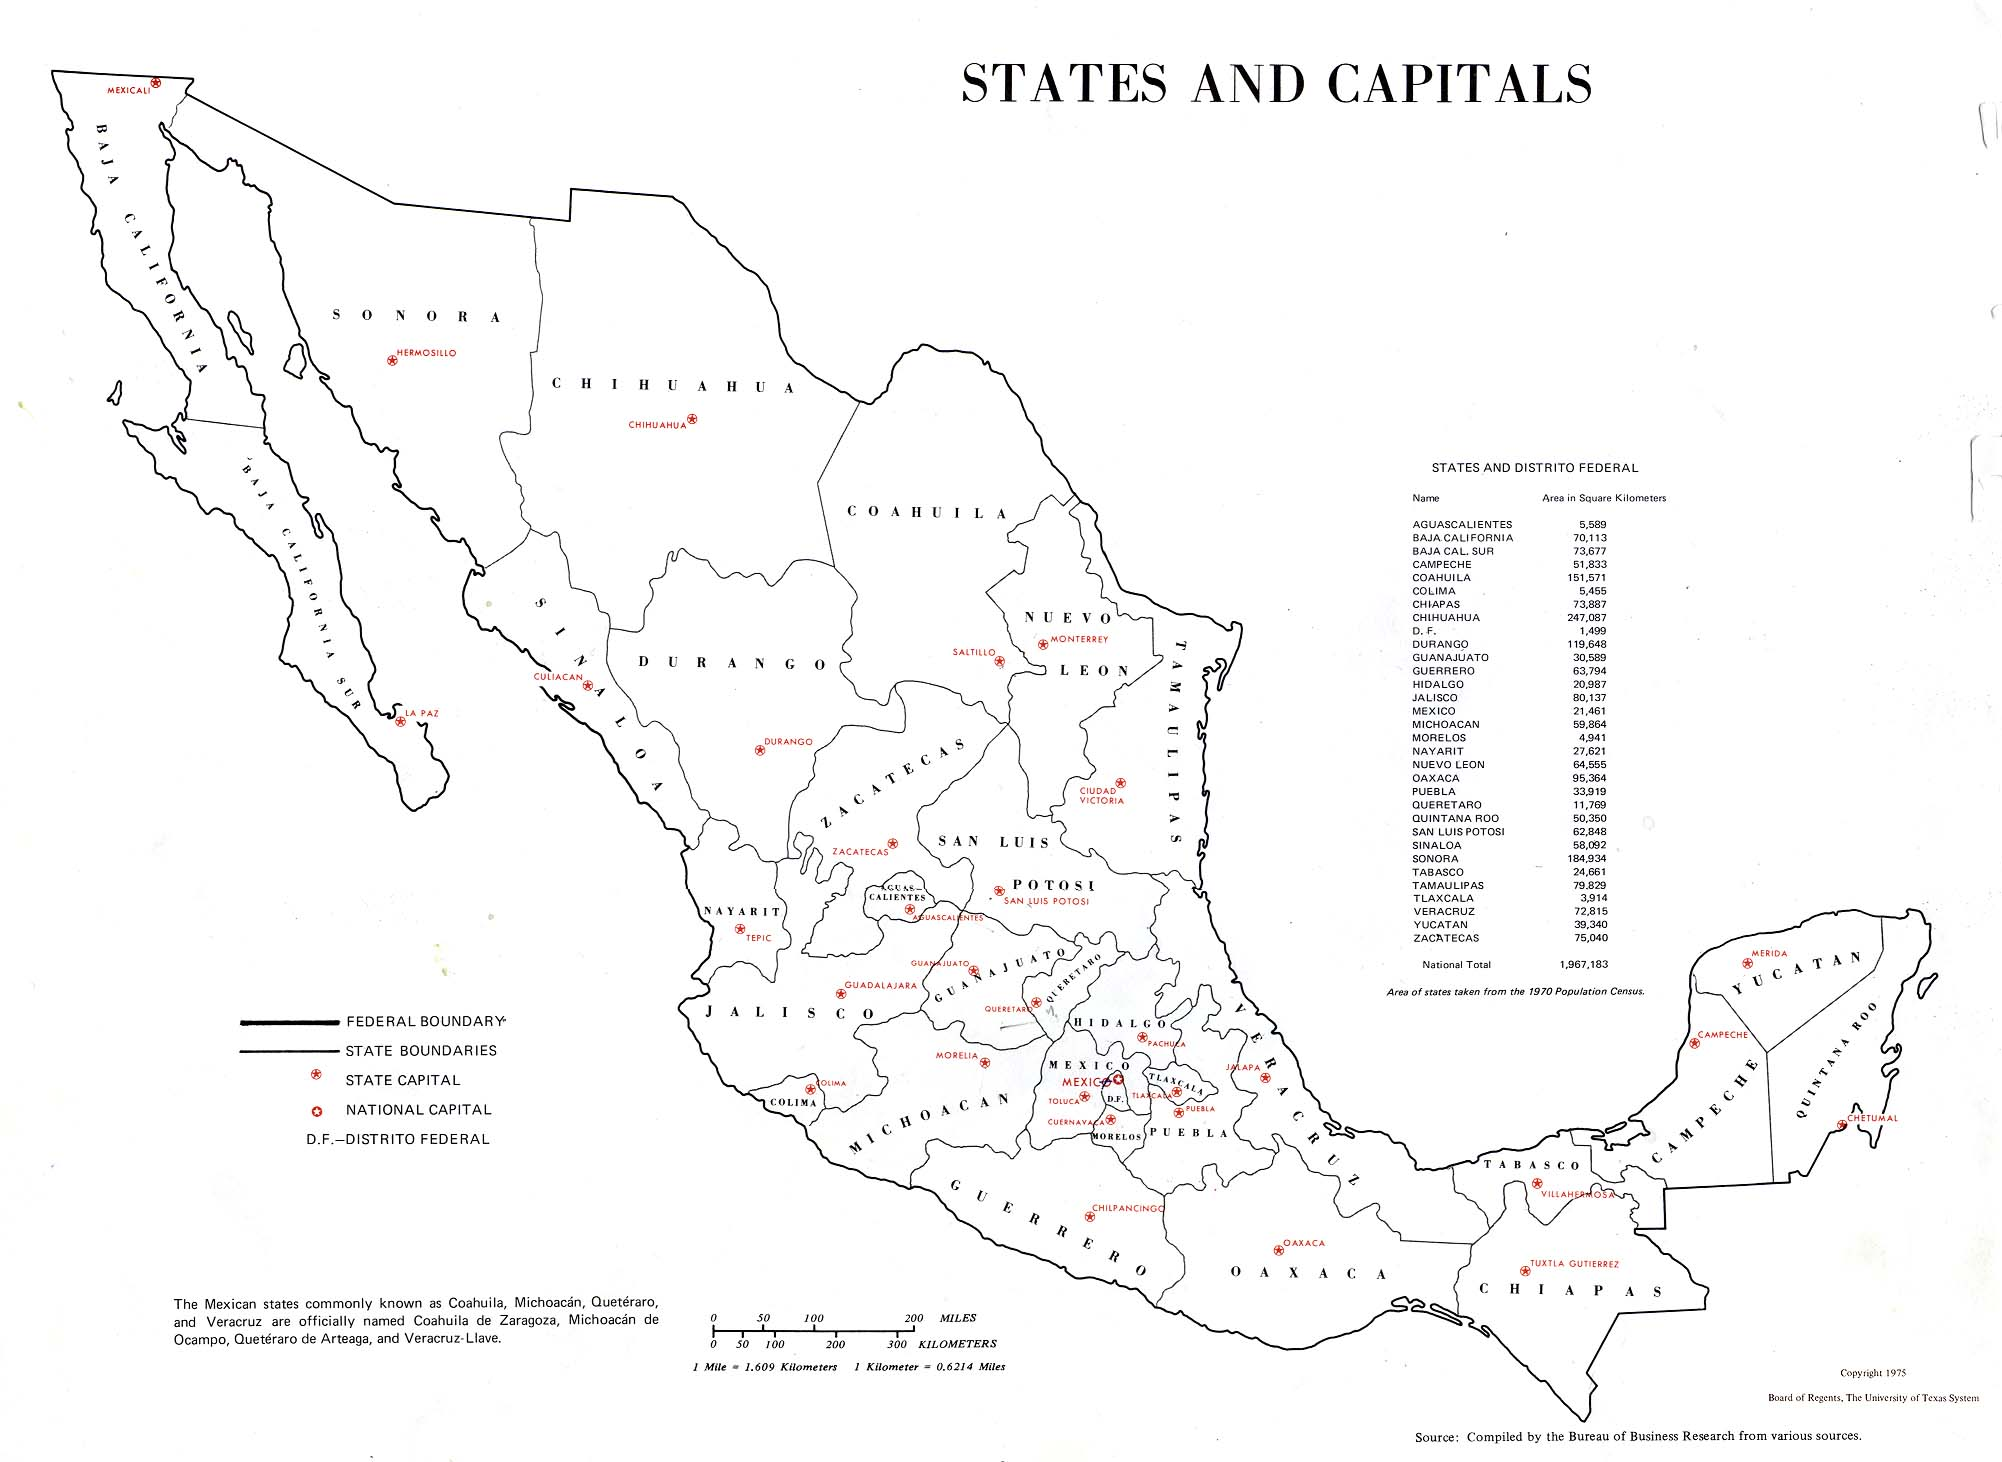 Map of Mexico - States and Capitals 1975